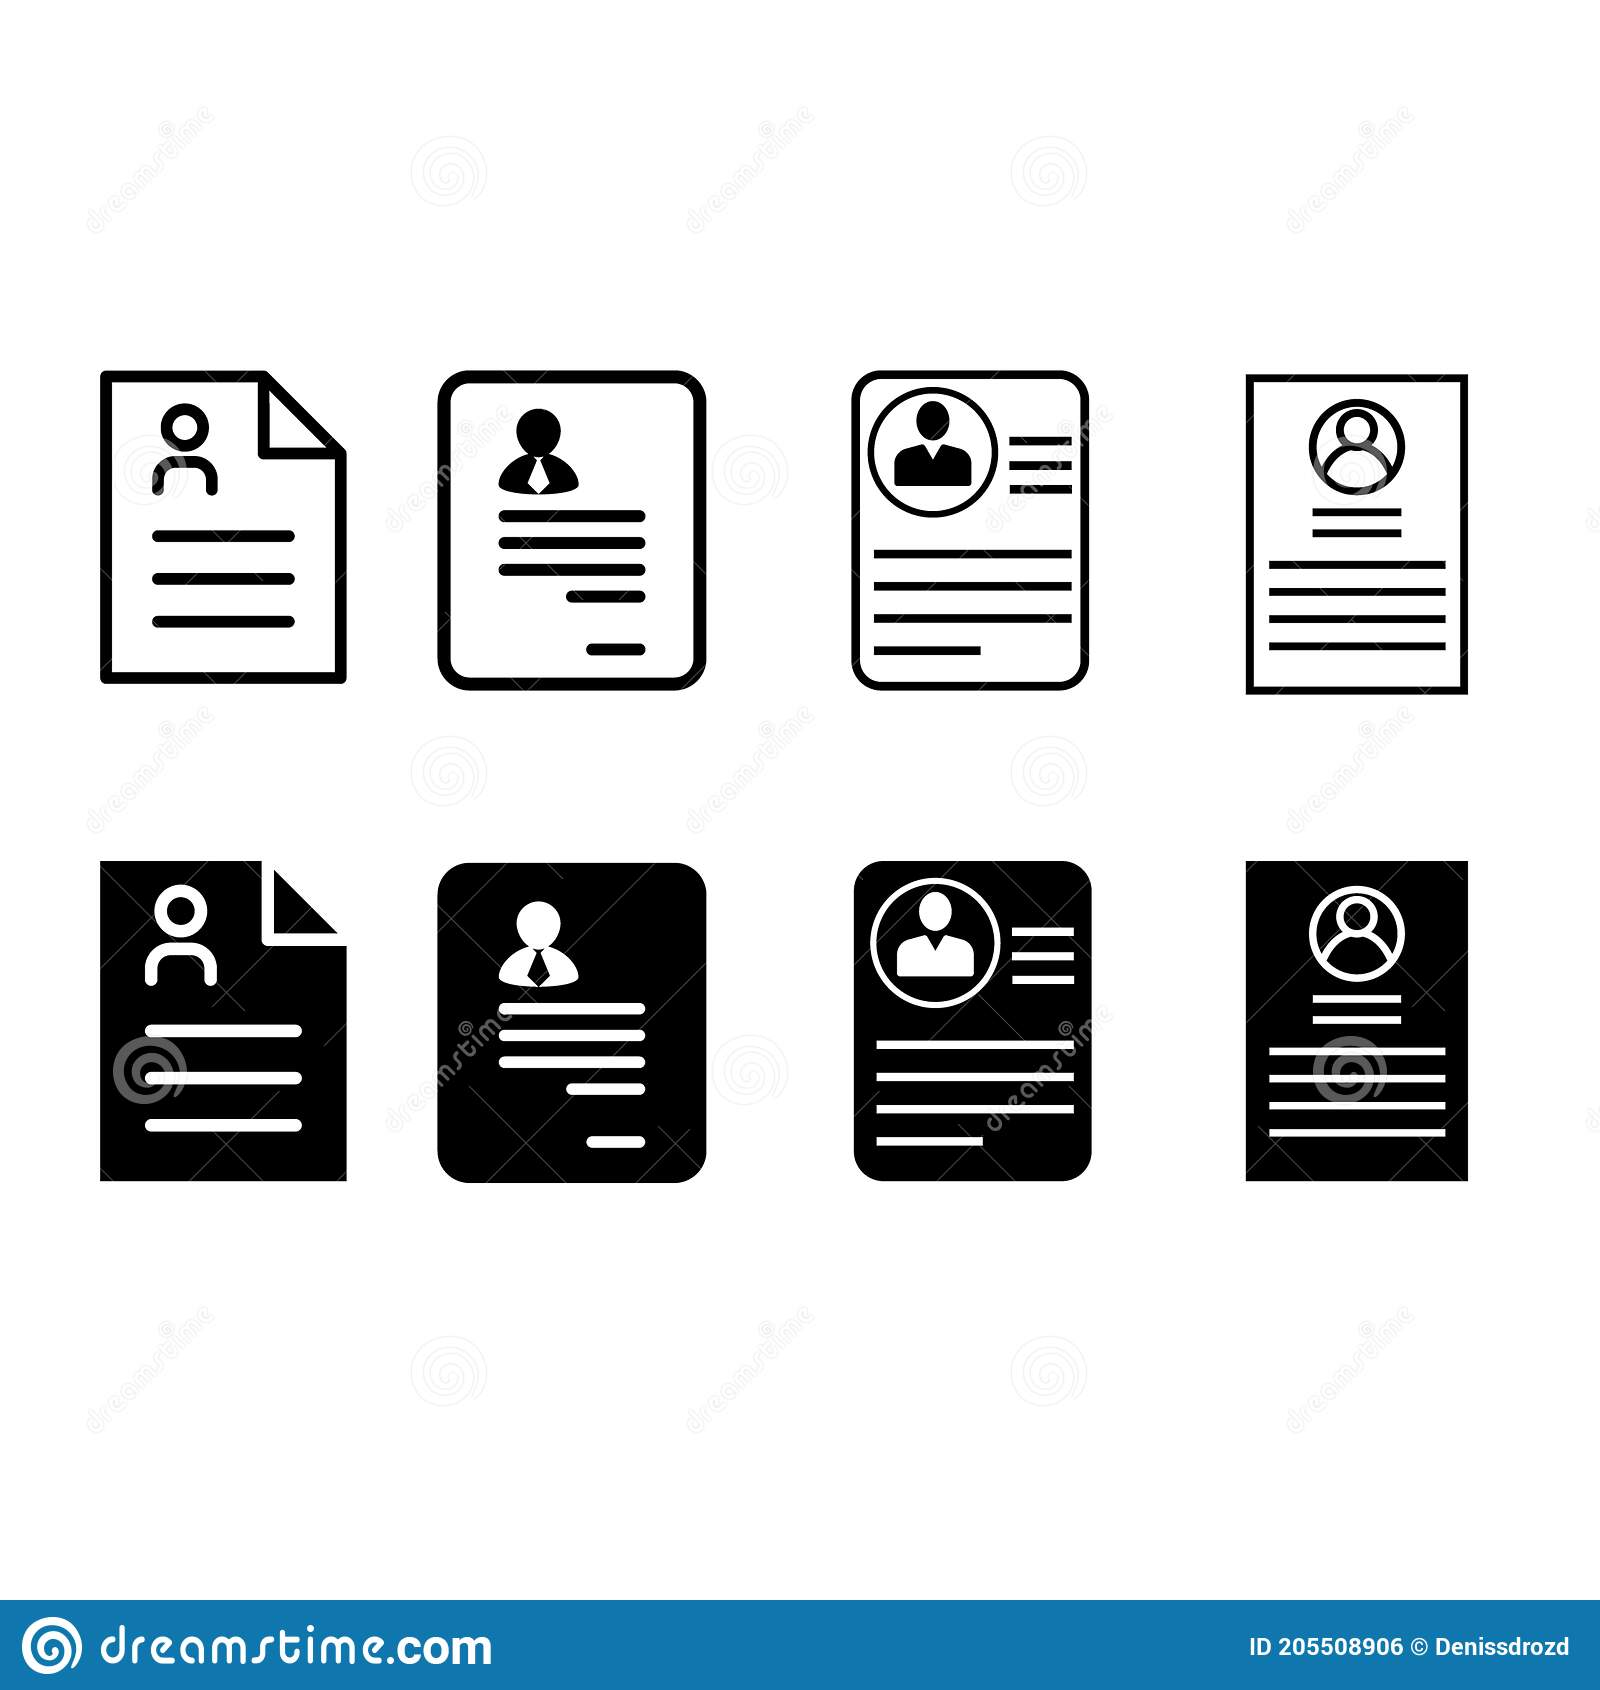 resume icon vector set summary illustration sign collection abstract symbol stock of eggs Resume Mobile Symbol For Resume